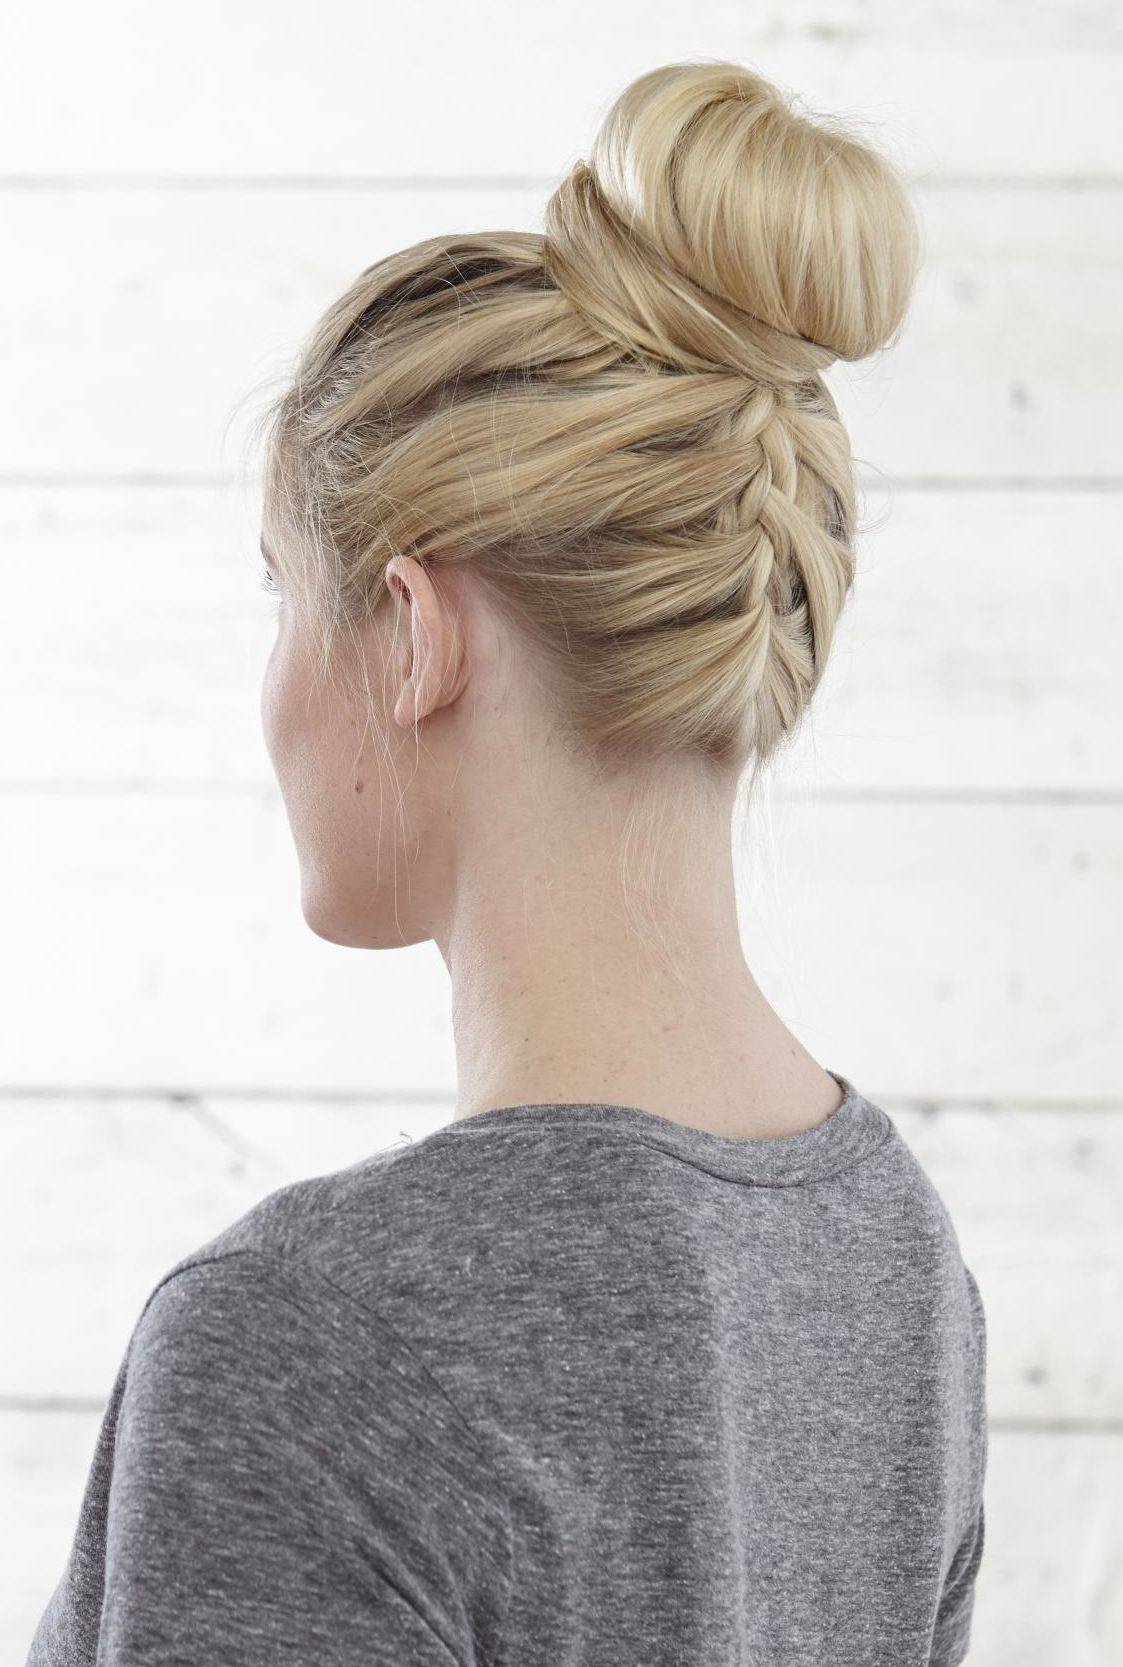 Most Recently Released Braided Chignon Hairstyles In 50 Fabulous French Braid Hairstyles To Diy – More (View 16 of 20)